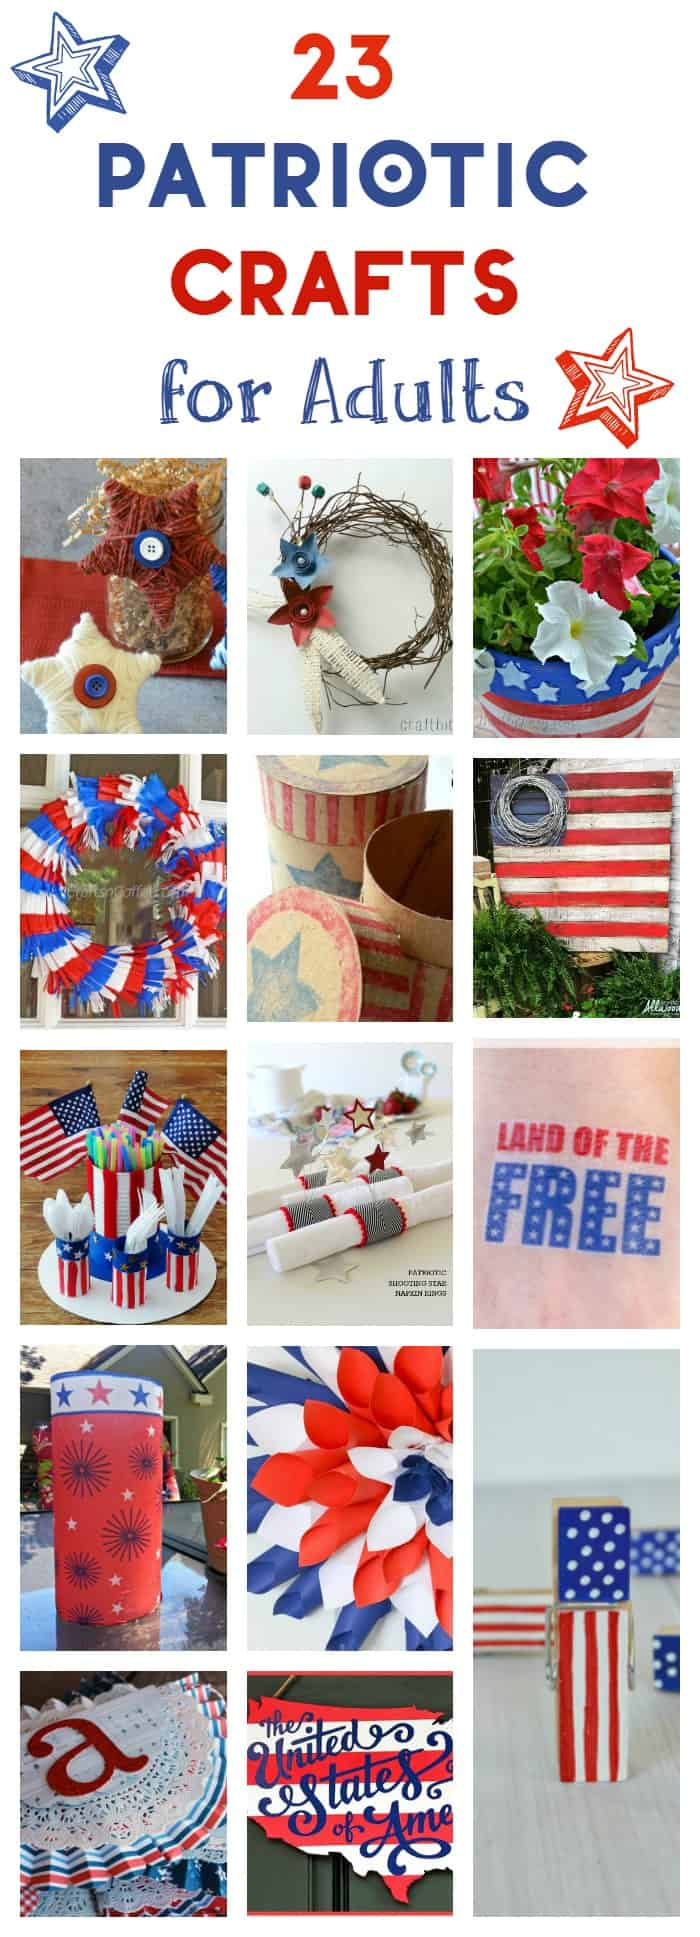 Want to give your home a patriotic makeover without spending a fortune? Make decorations yourself! Check out 23 charming patriotic crafts for adults that are perfect for the 4th of July!